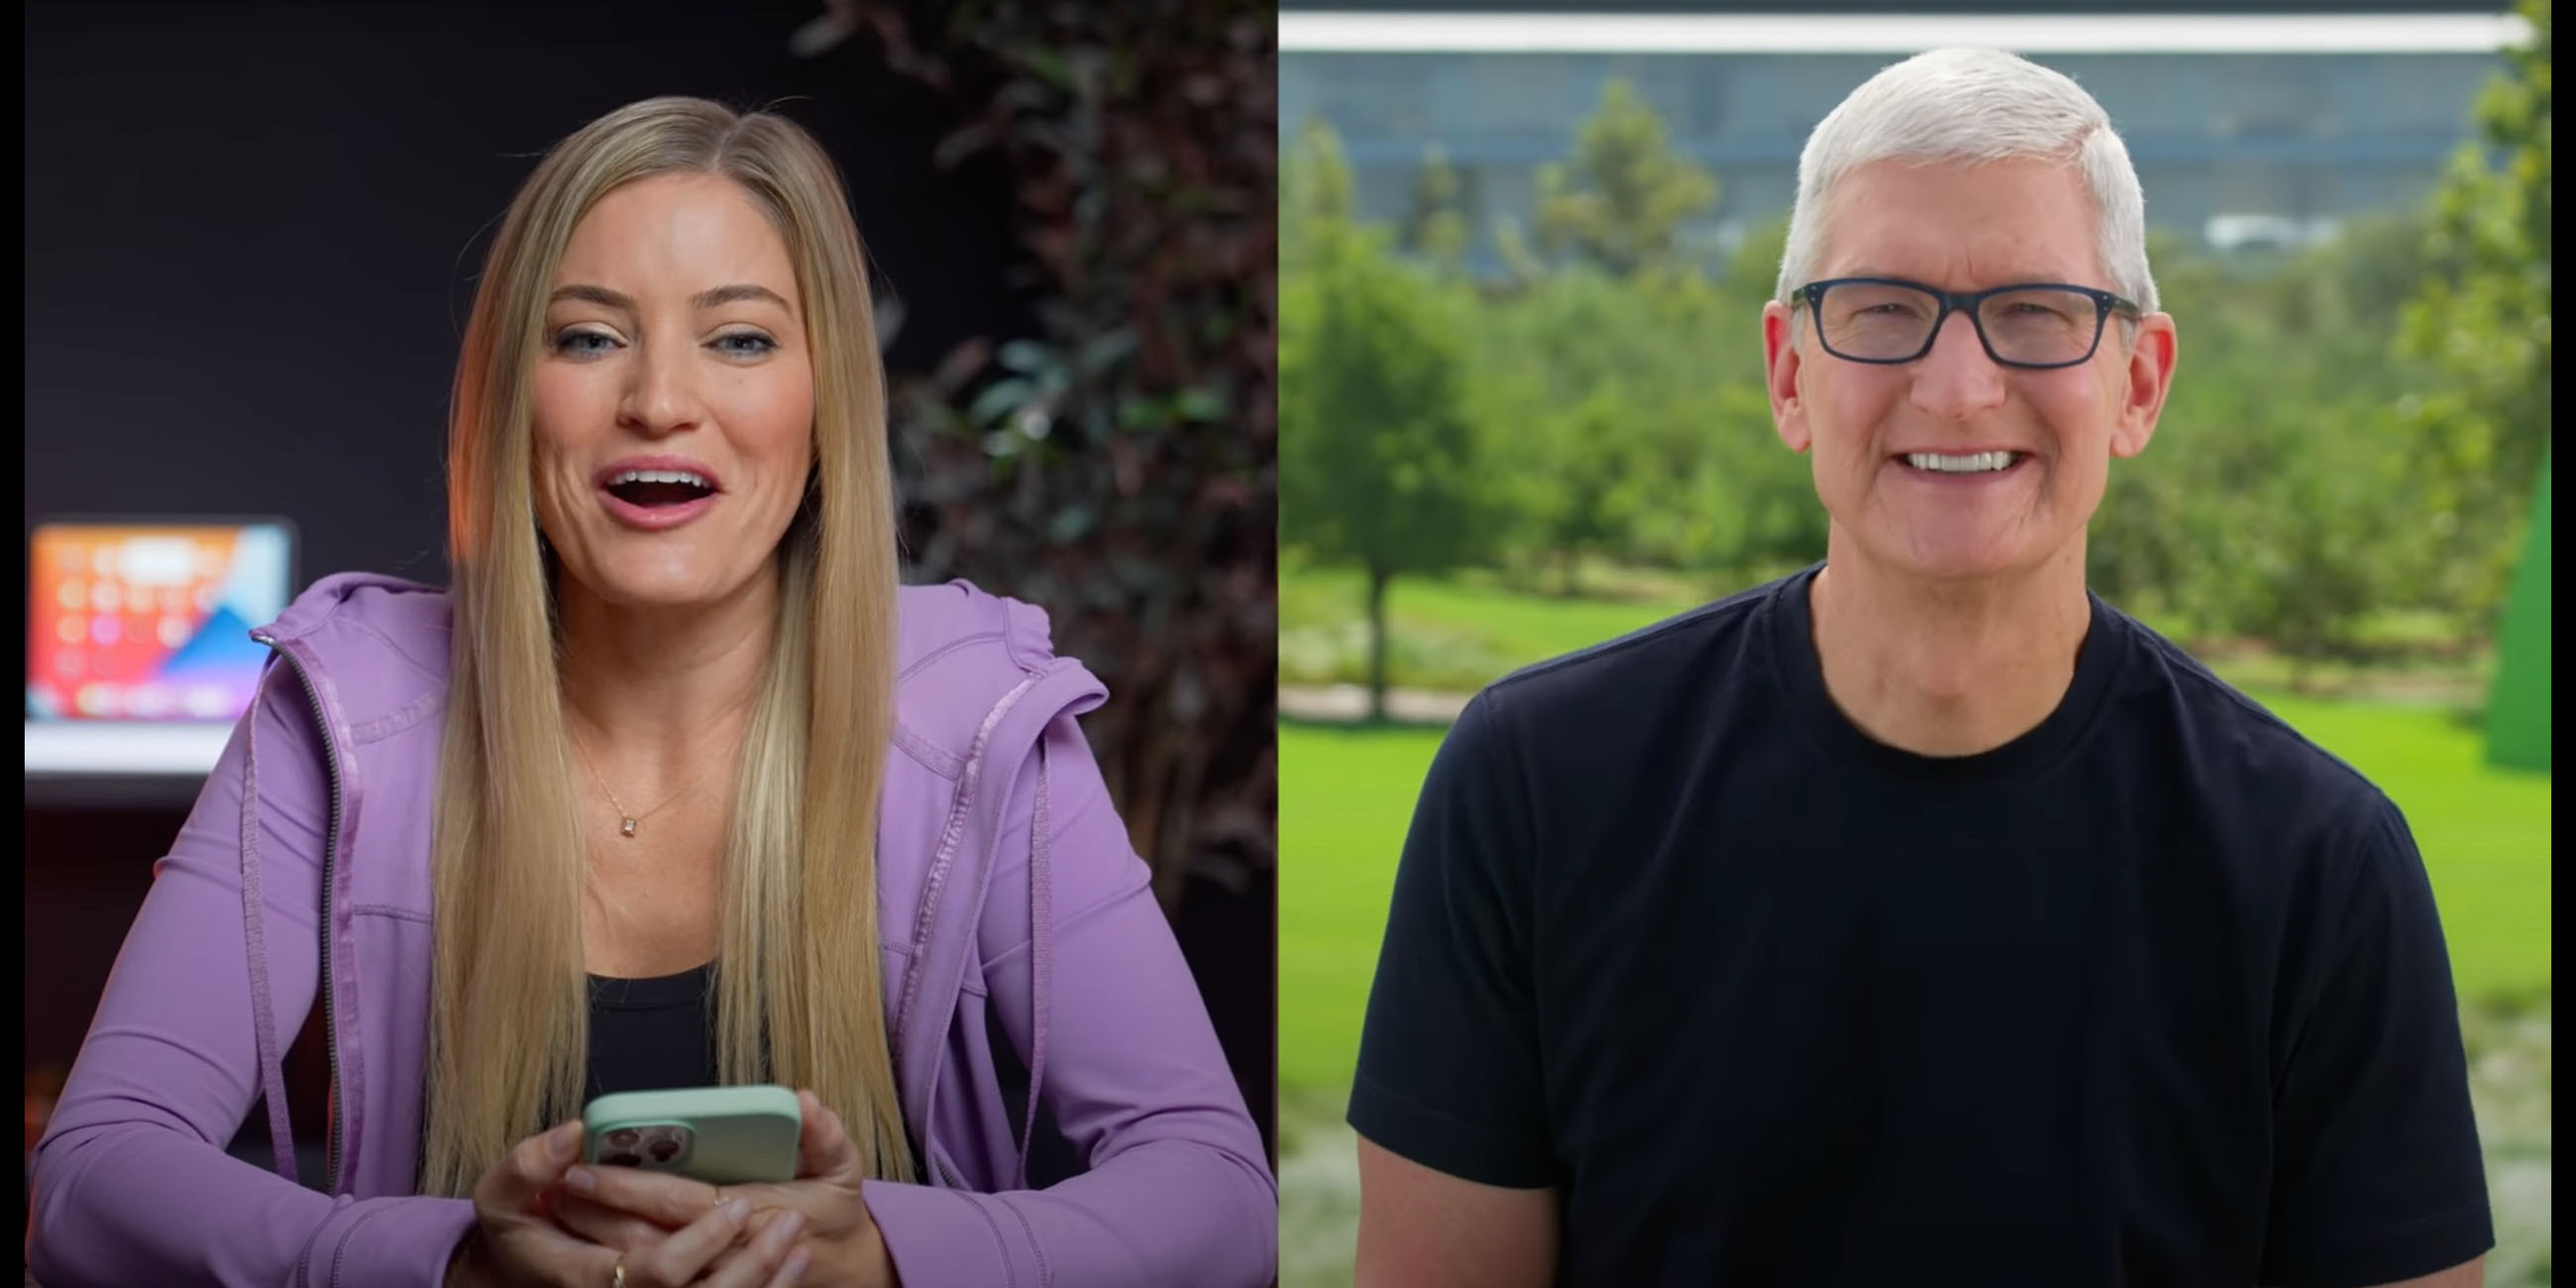 iJustine Tim Cook interview briefly covers virtual events, iPad mini, AR, stores